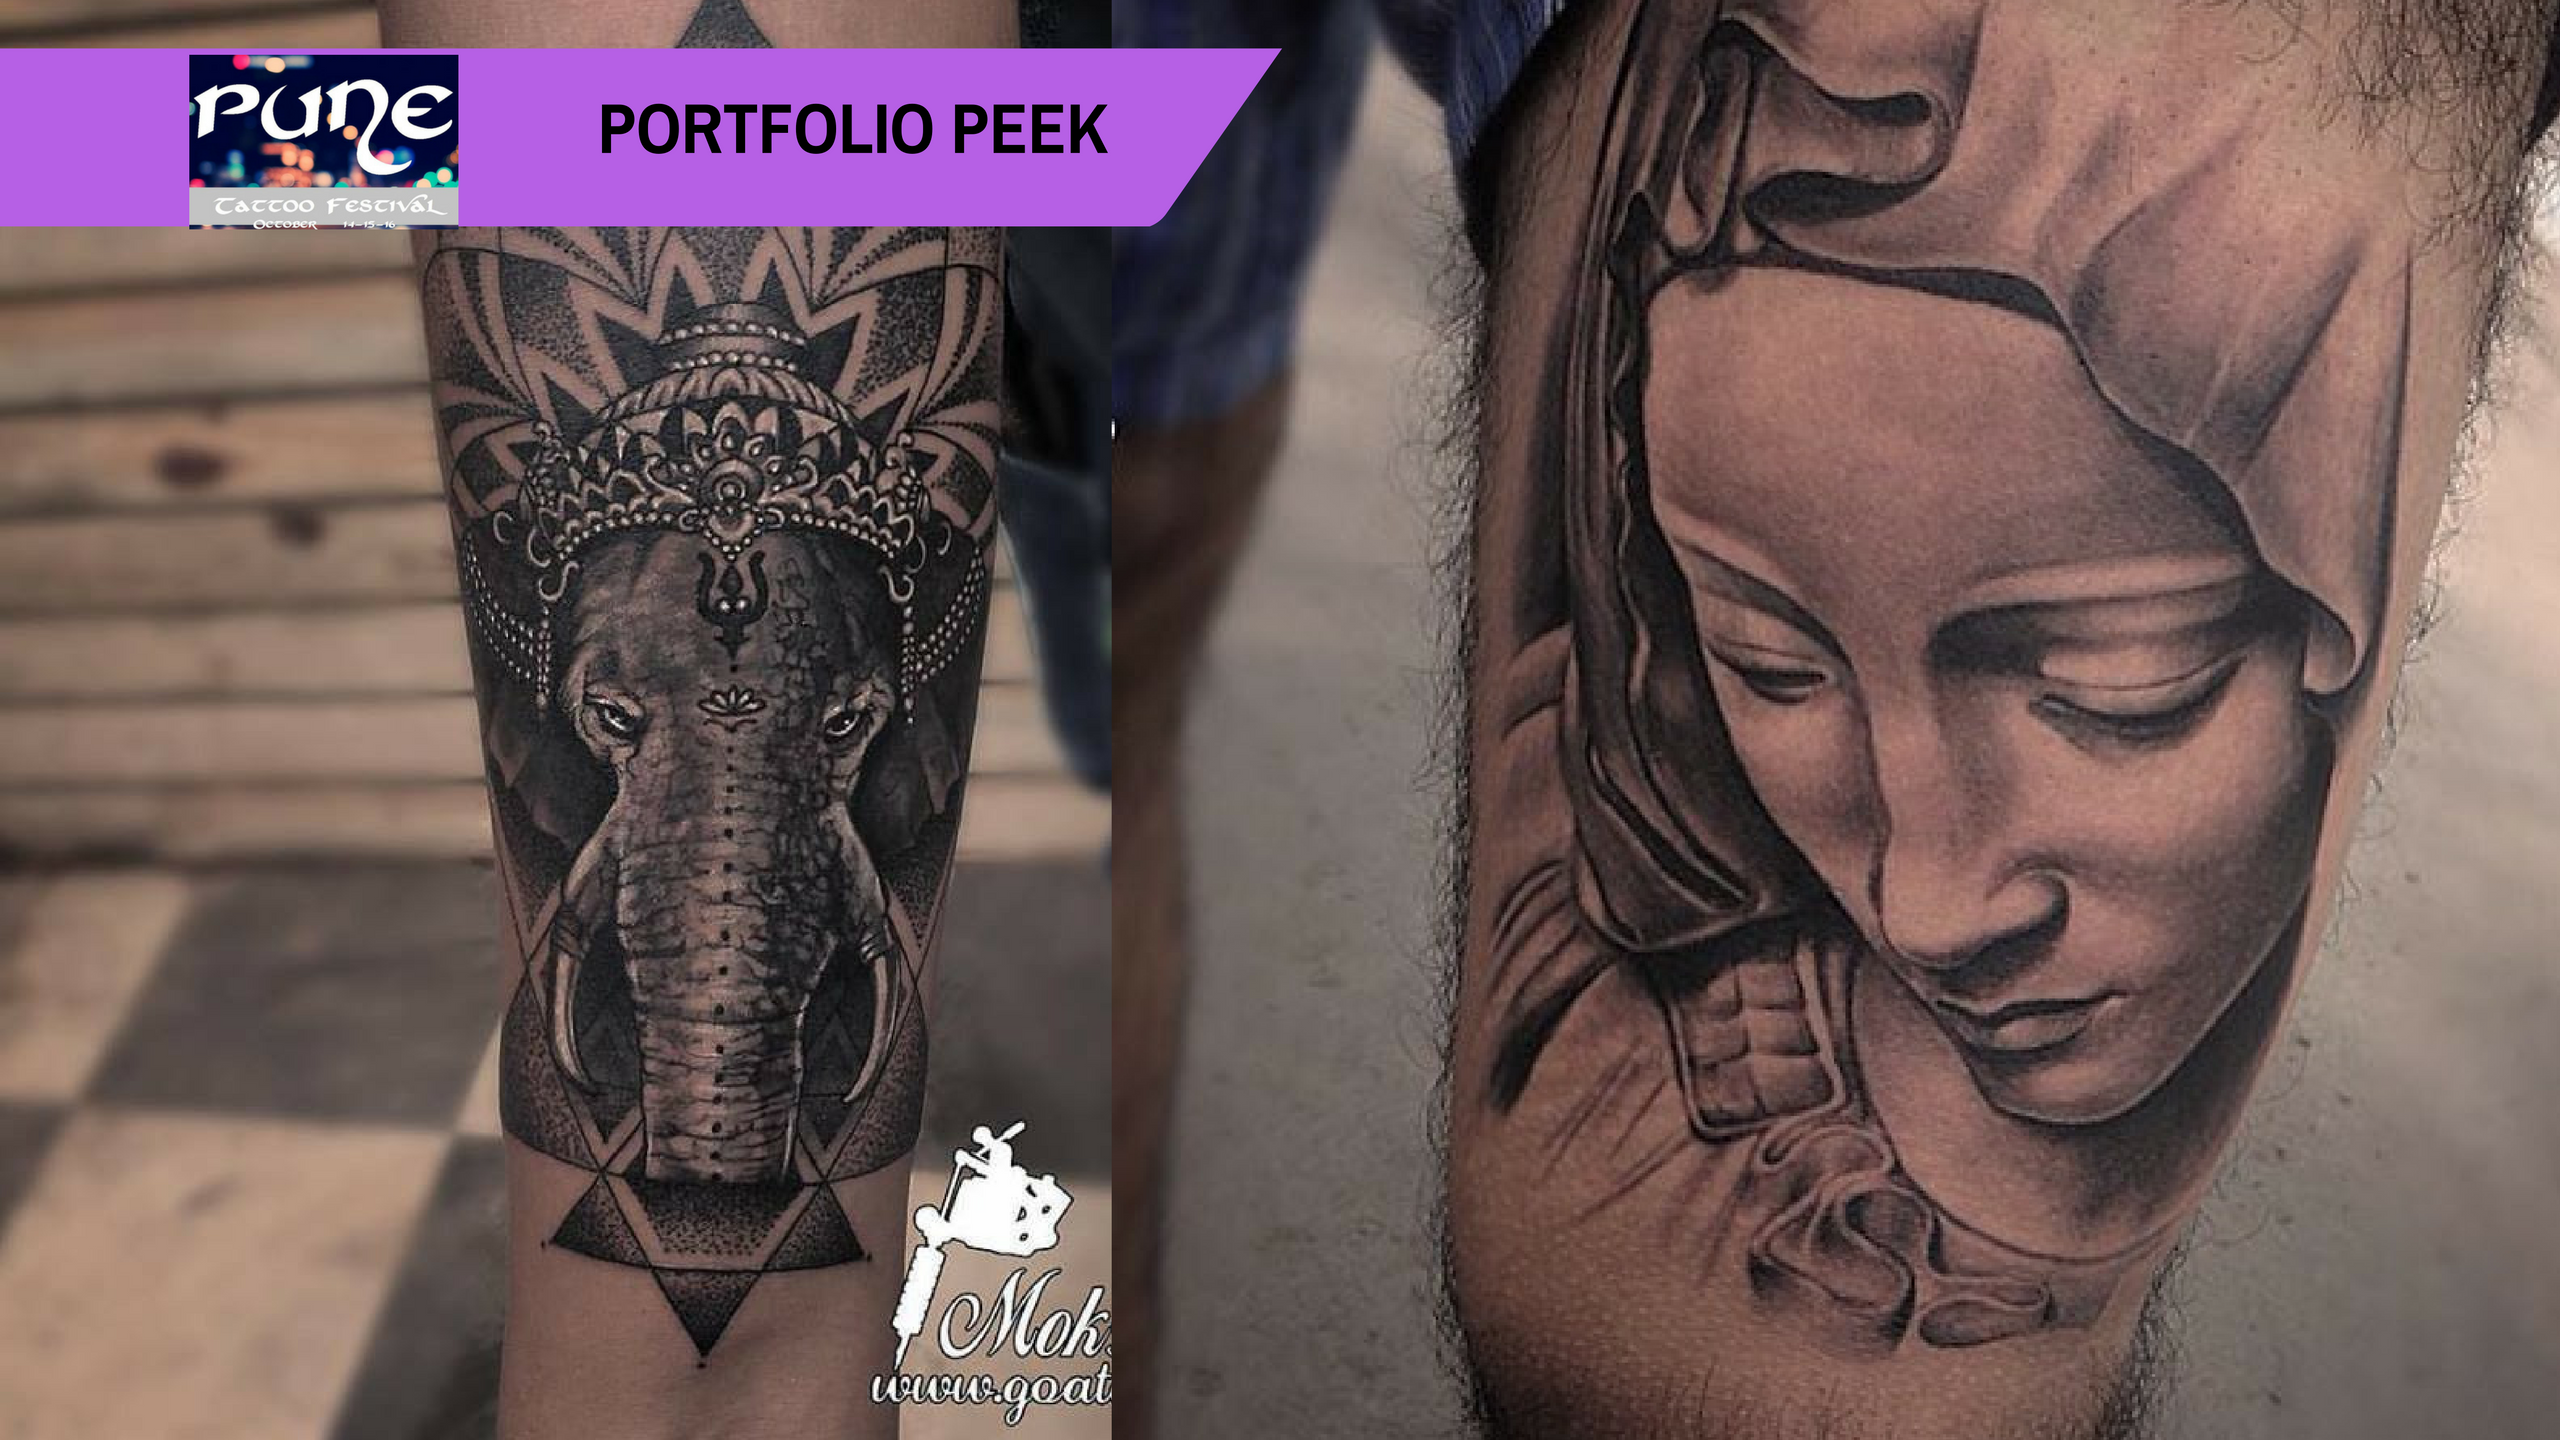 Pune Tattoo Fest Portfolio Peek: Mukesh Waghela's modern approach to traditional elements